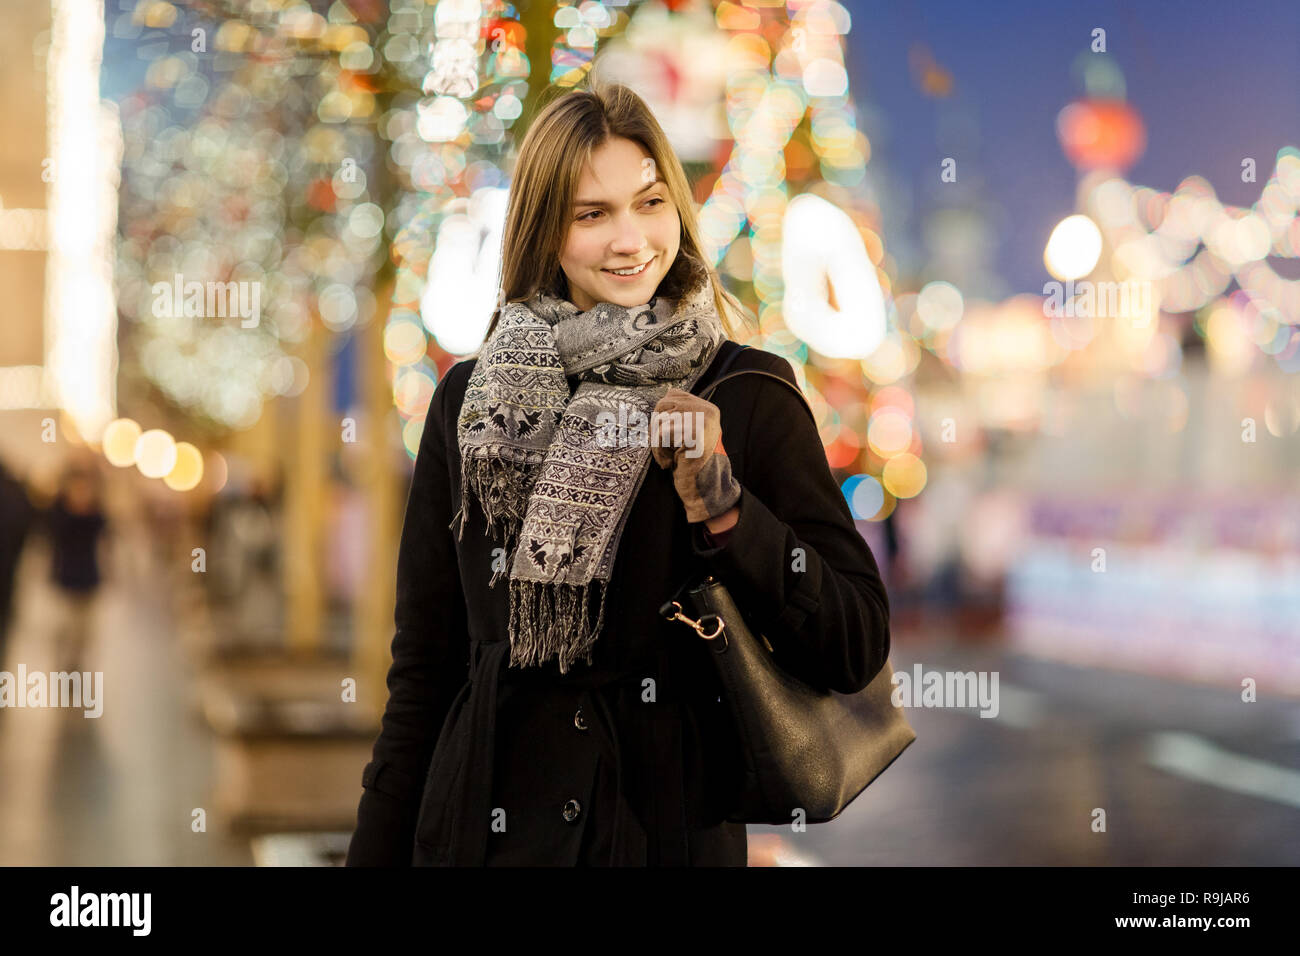 Photo of woman outside in city on blurred background with garland - Stock Image